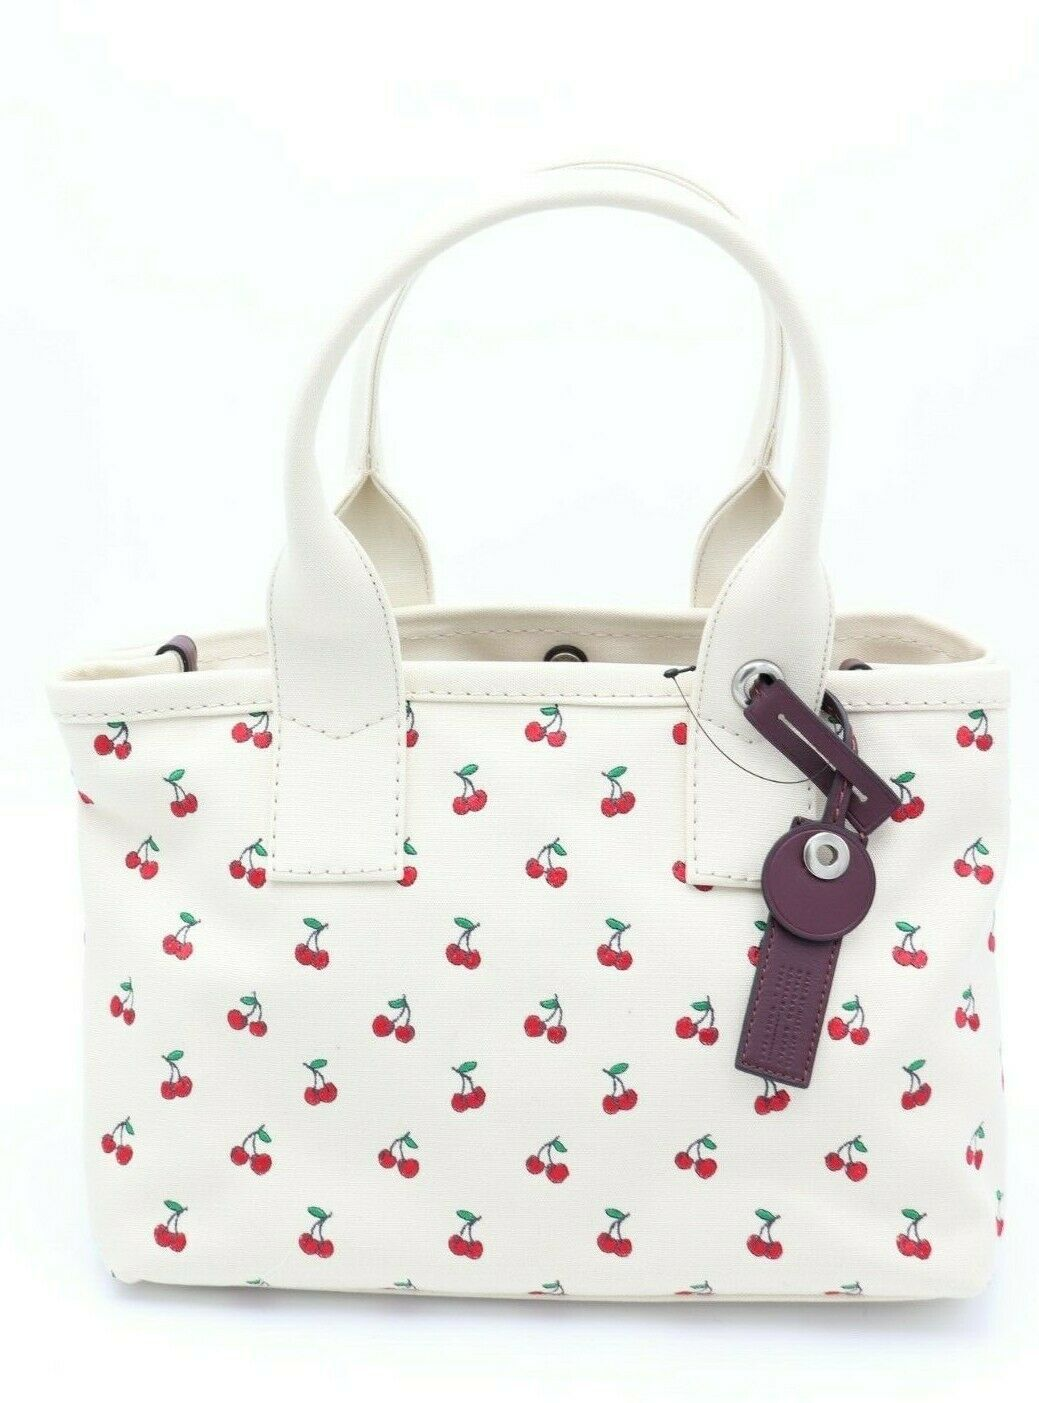 Primary image for NWT MARC by Marc Jacobs Cherry Fruit Embroidered Canvas Tote Shoulder Bag $278